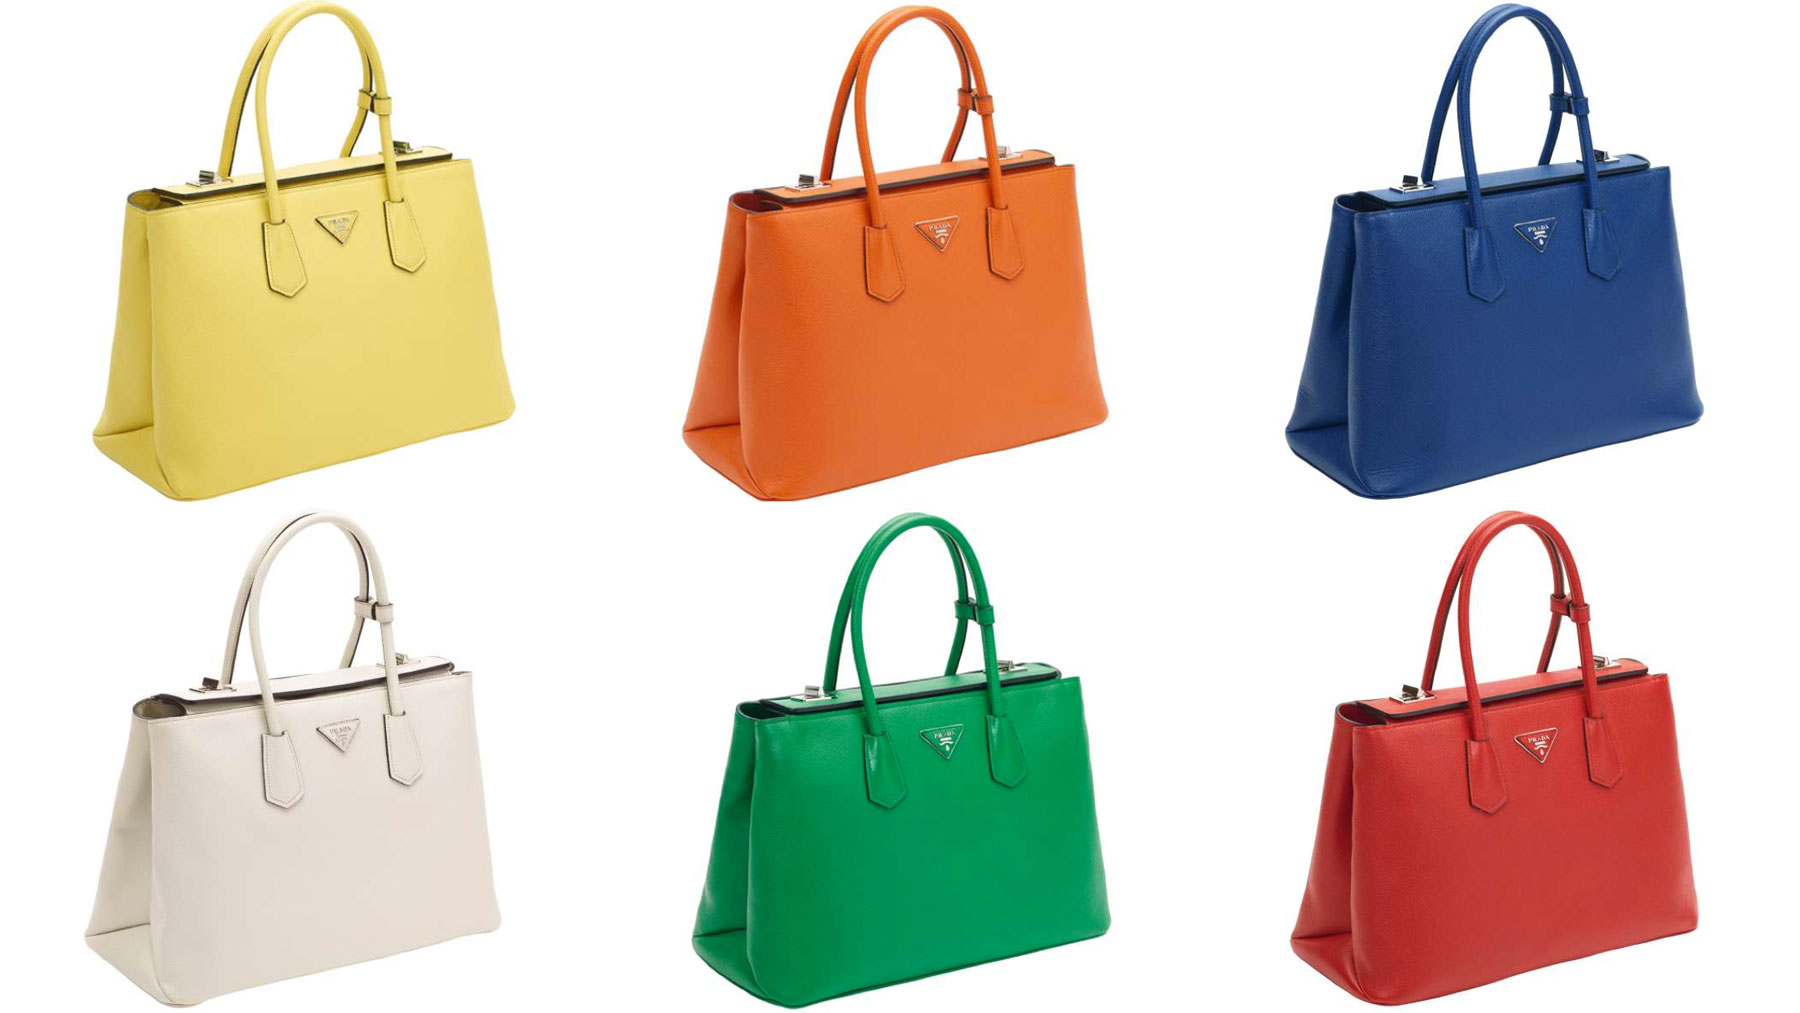 cheap prada bags uk - prada it bag, purse prada price